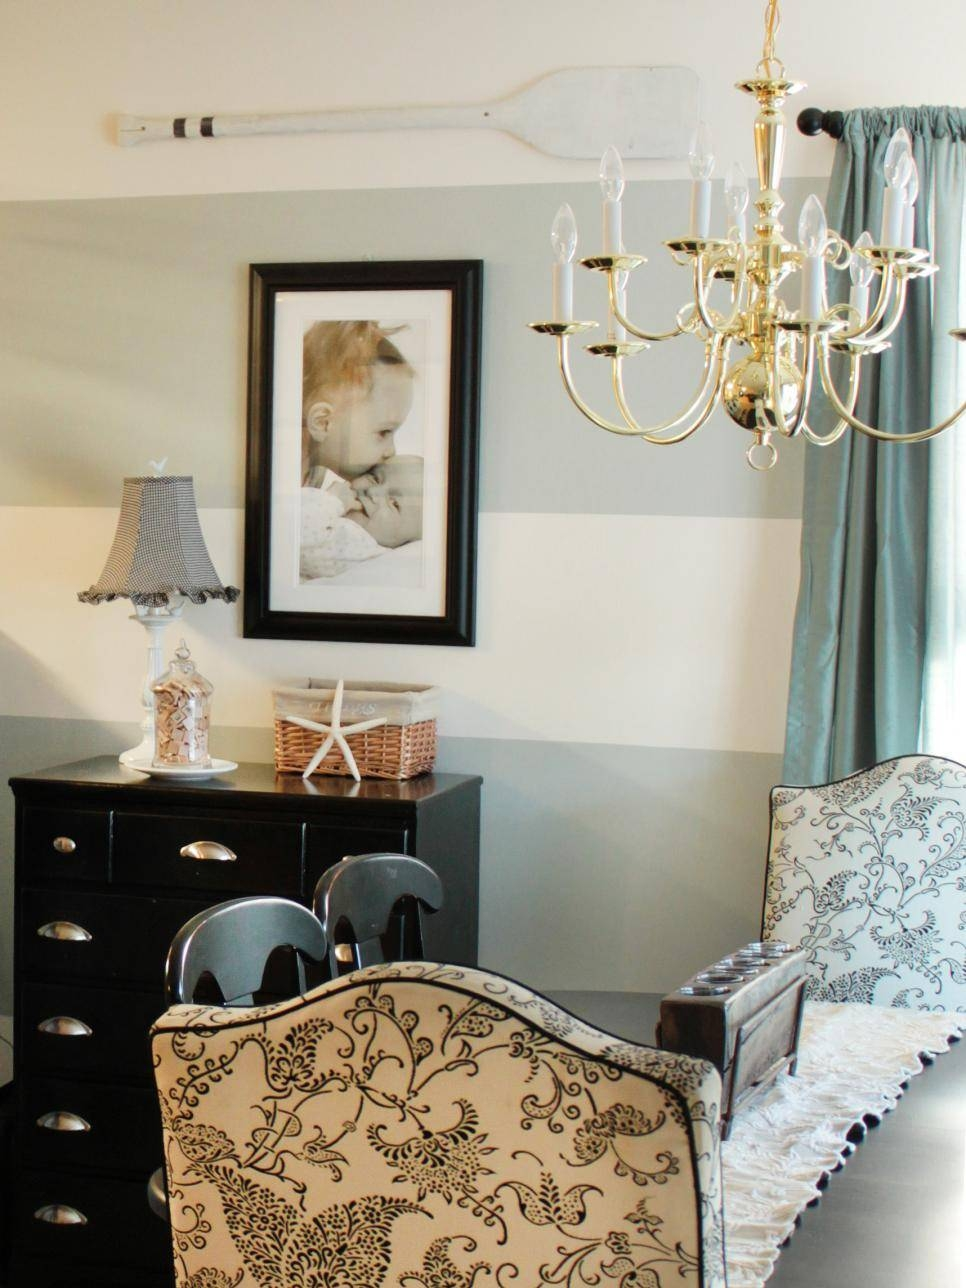 15 Dining Room Decorating Ideas | Hgtv Intended For Best And Newest Wall Art For Dining Room (View 2 of 20)